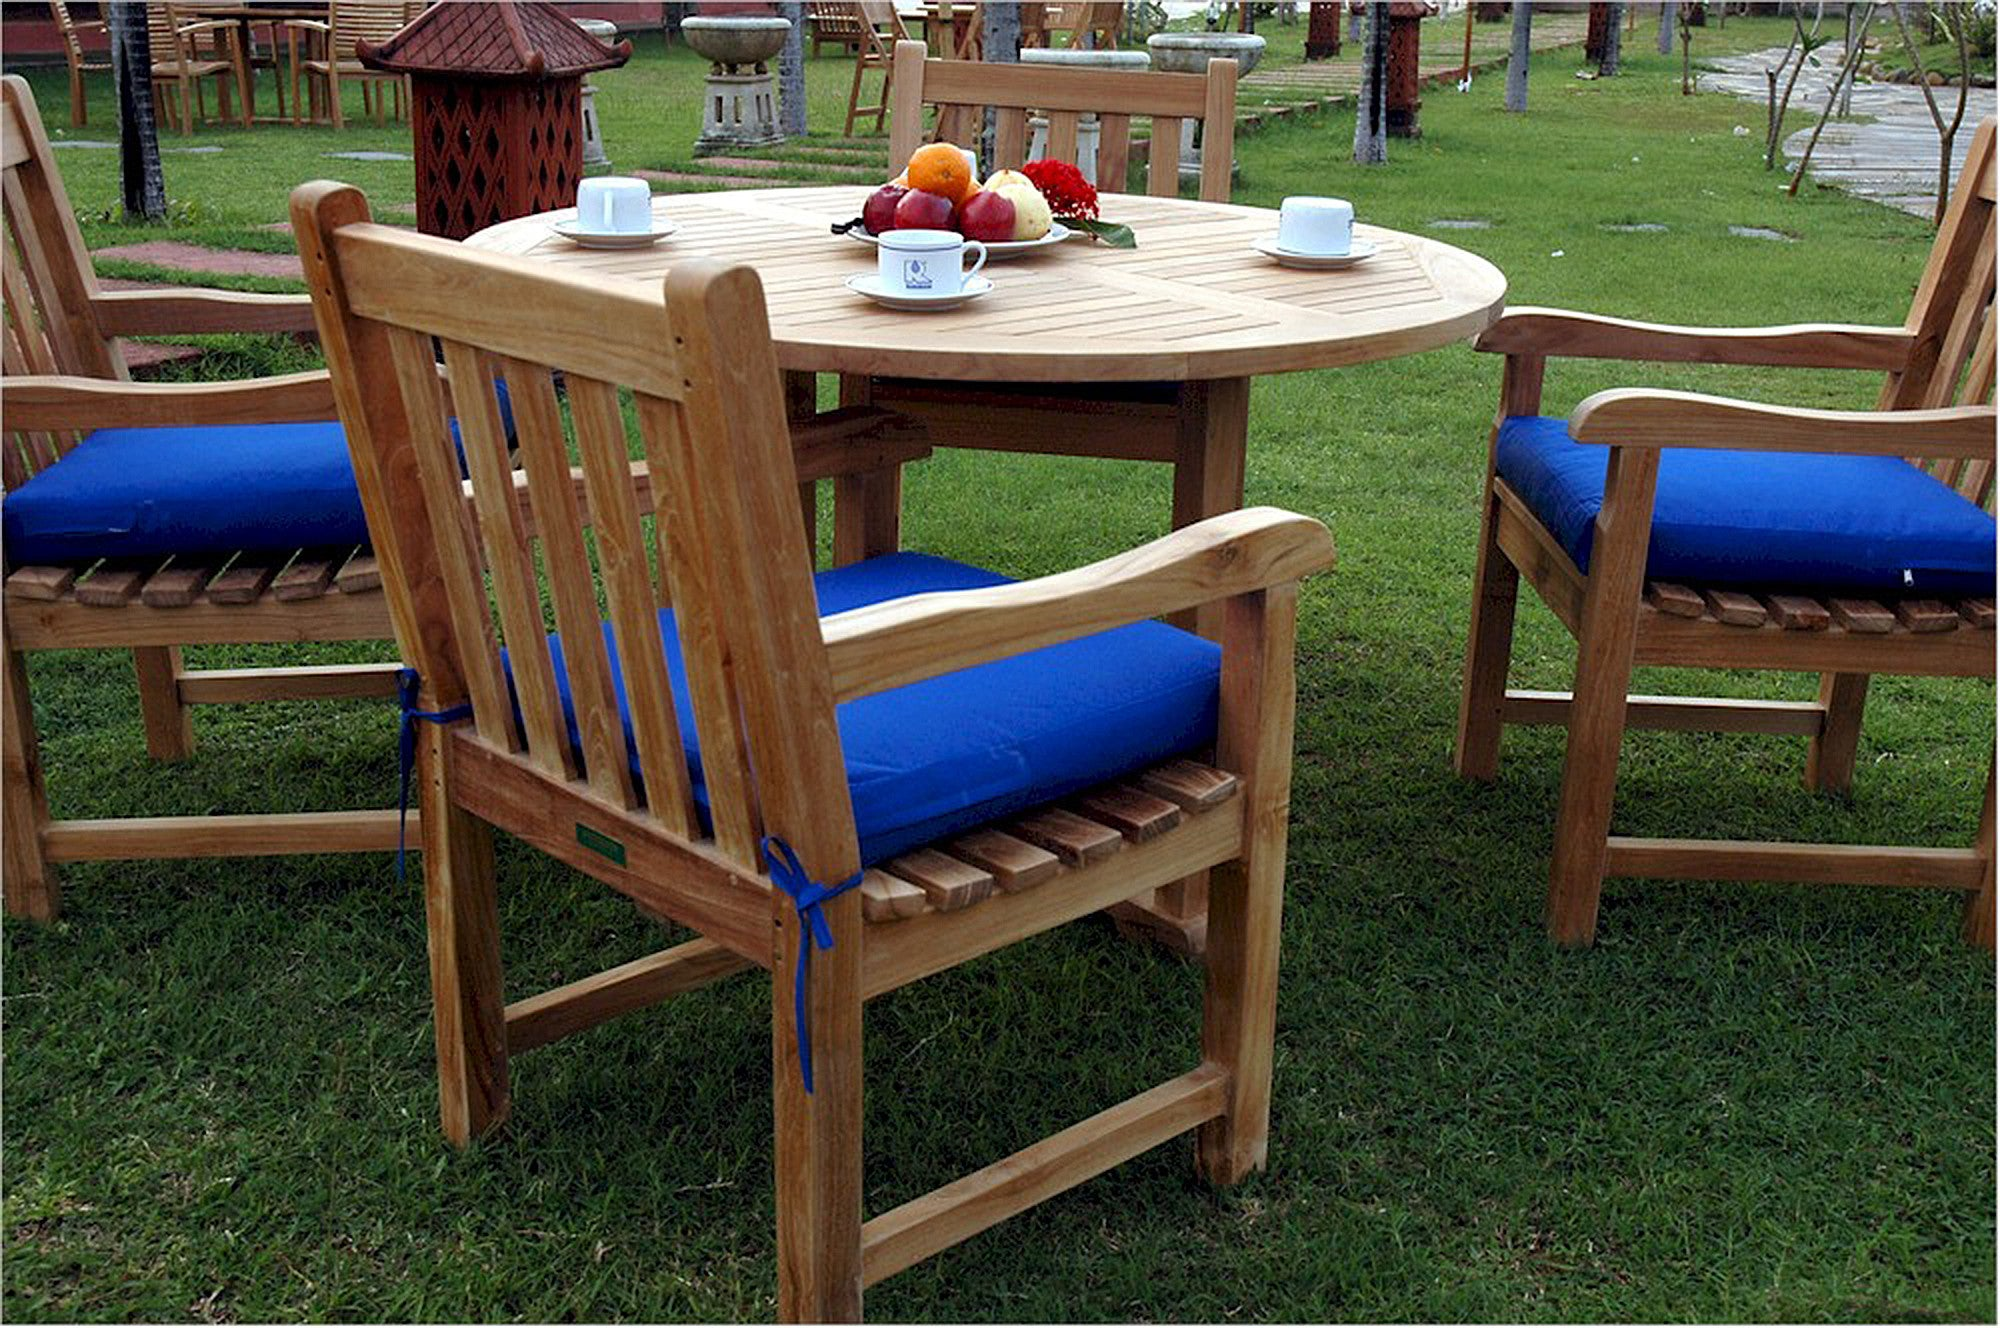 Anderson Tosca Round Table Classic Chairs Teak Patio Set Teakwood Central